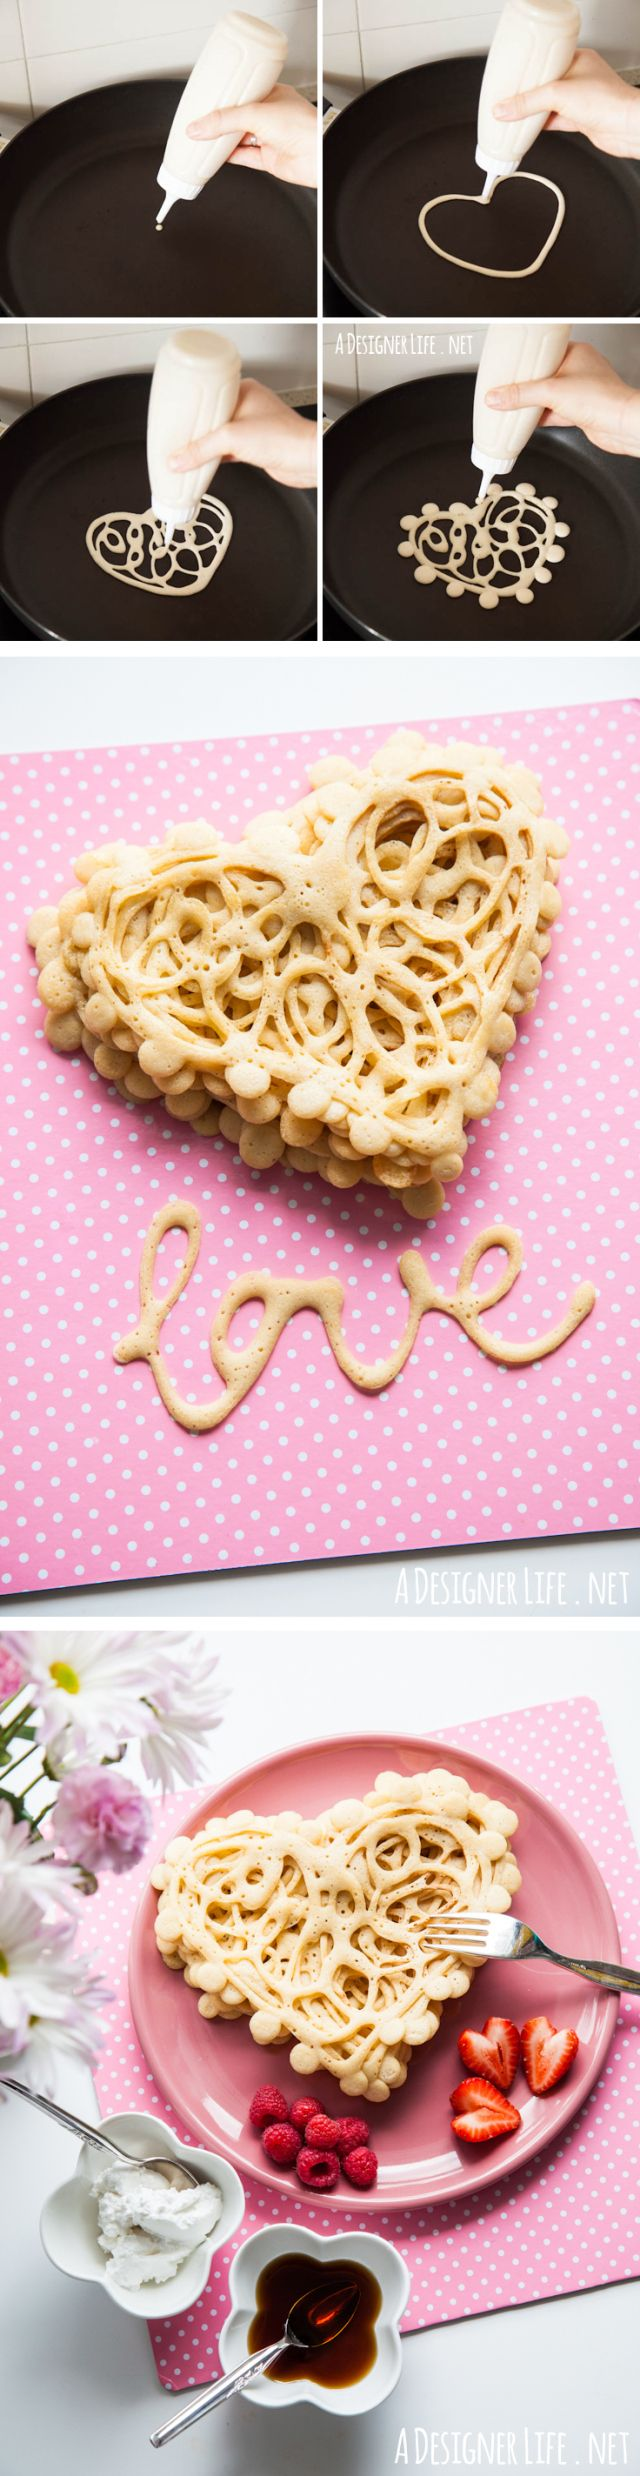 12Feb2015 Food Design: 3 Easy Last Minute Valentines Day Recipes categories: Food Design, Photography, Portfolio, Styling